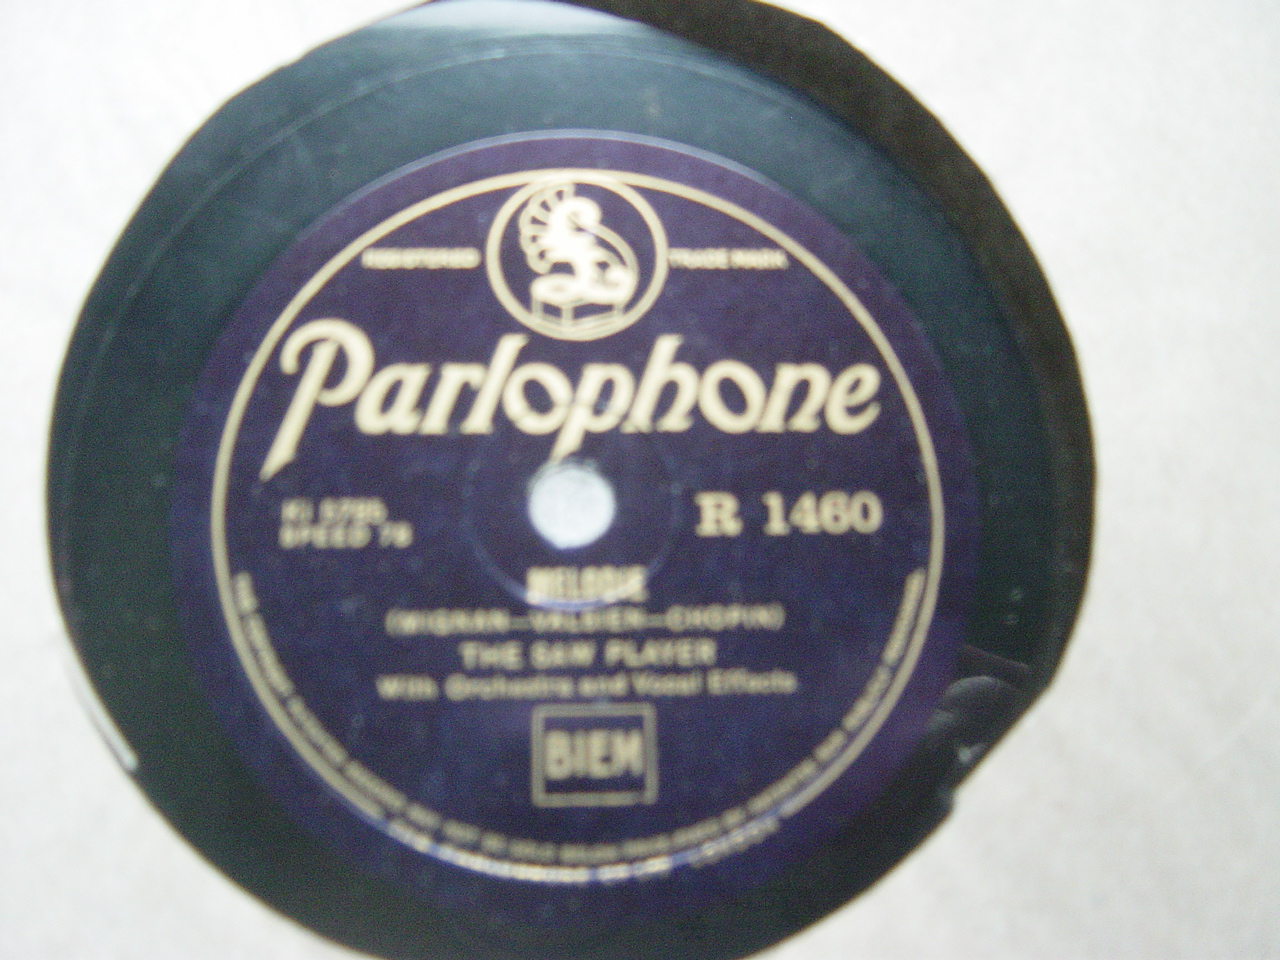 The Saw Player - Melodie / Hearts Delight - Parlophone R.1460